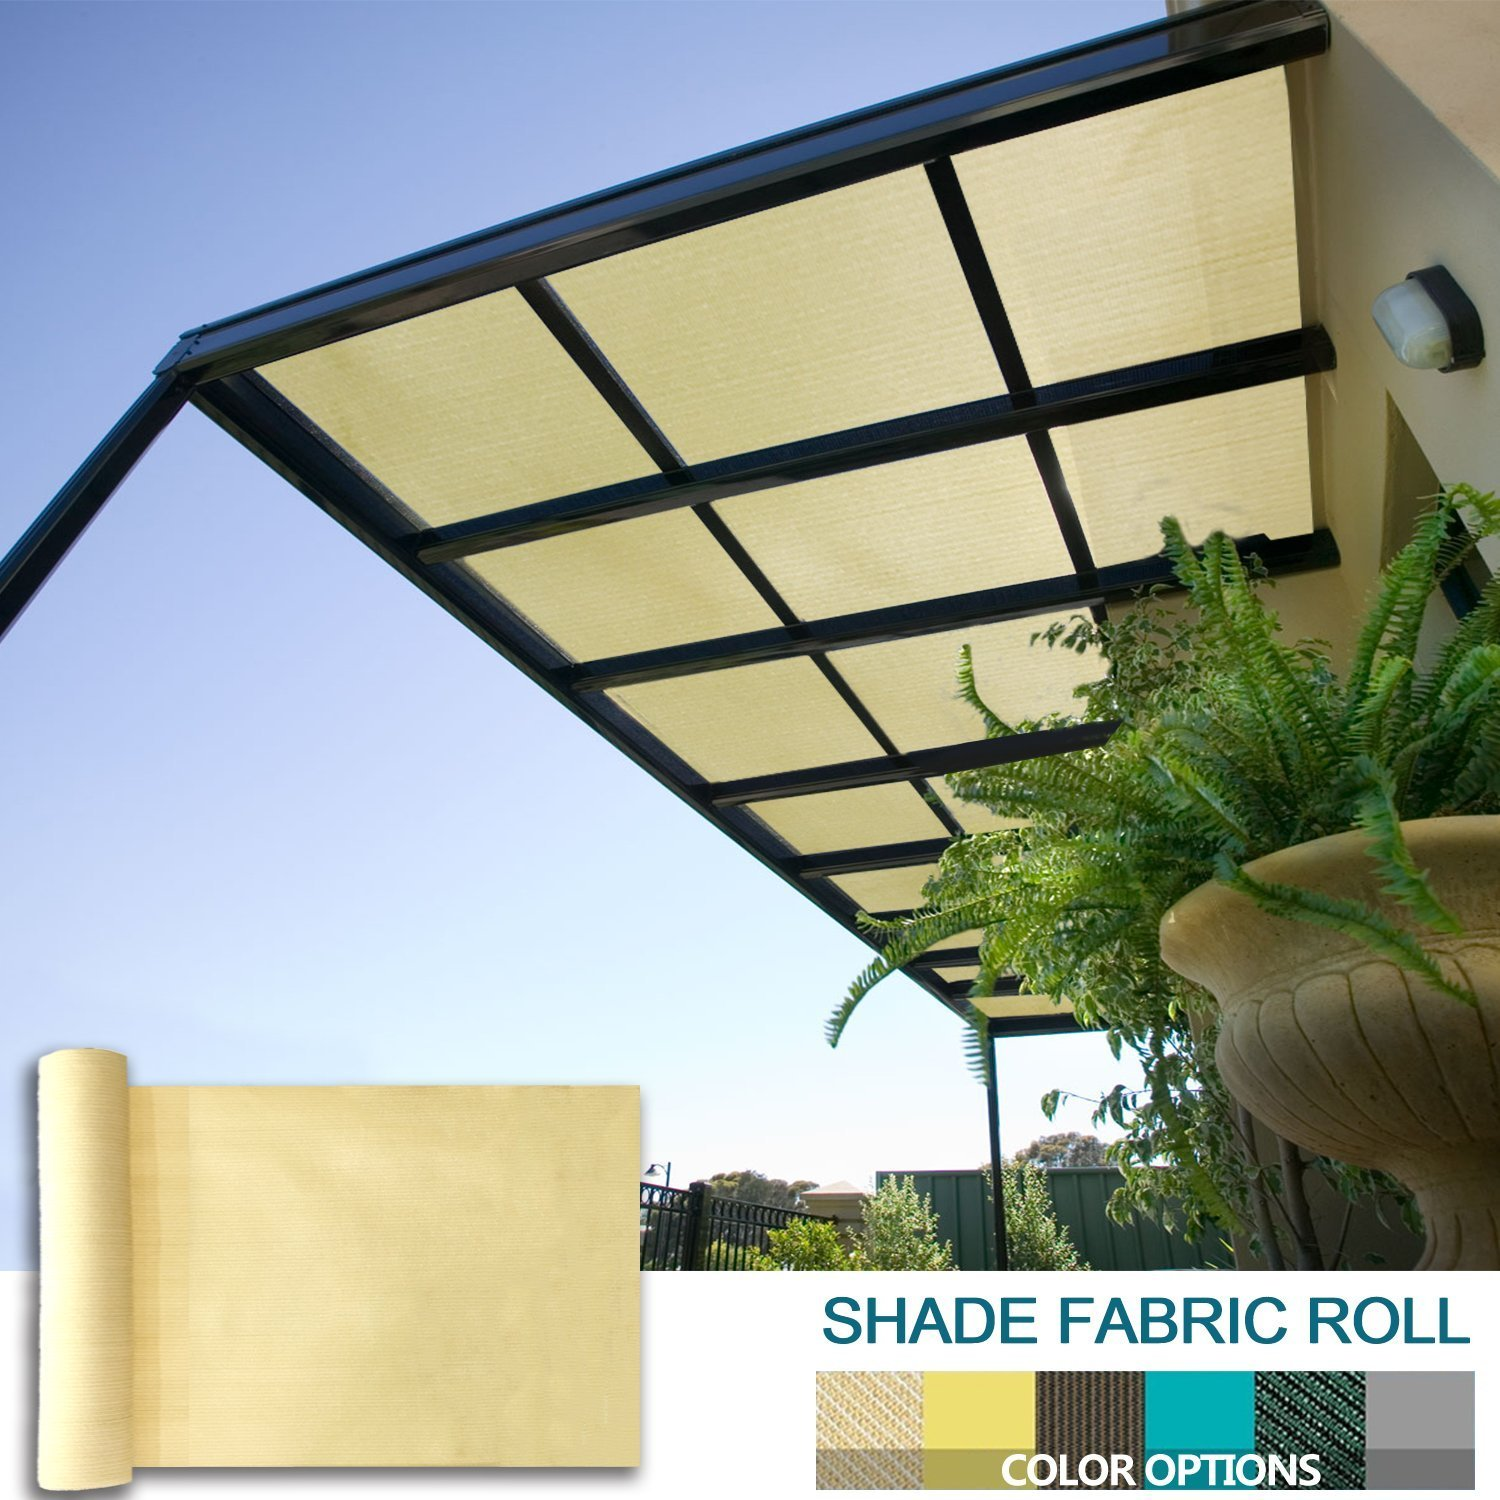 Coarbor 12Ft x 15Ft Shade Cloth Pergola Patio Cover Provide Shade Fabric Roll Customized Mesh Screen Heavy Duty Provide Privacy Permeable UV Resistant Make to Order- Beige